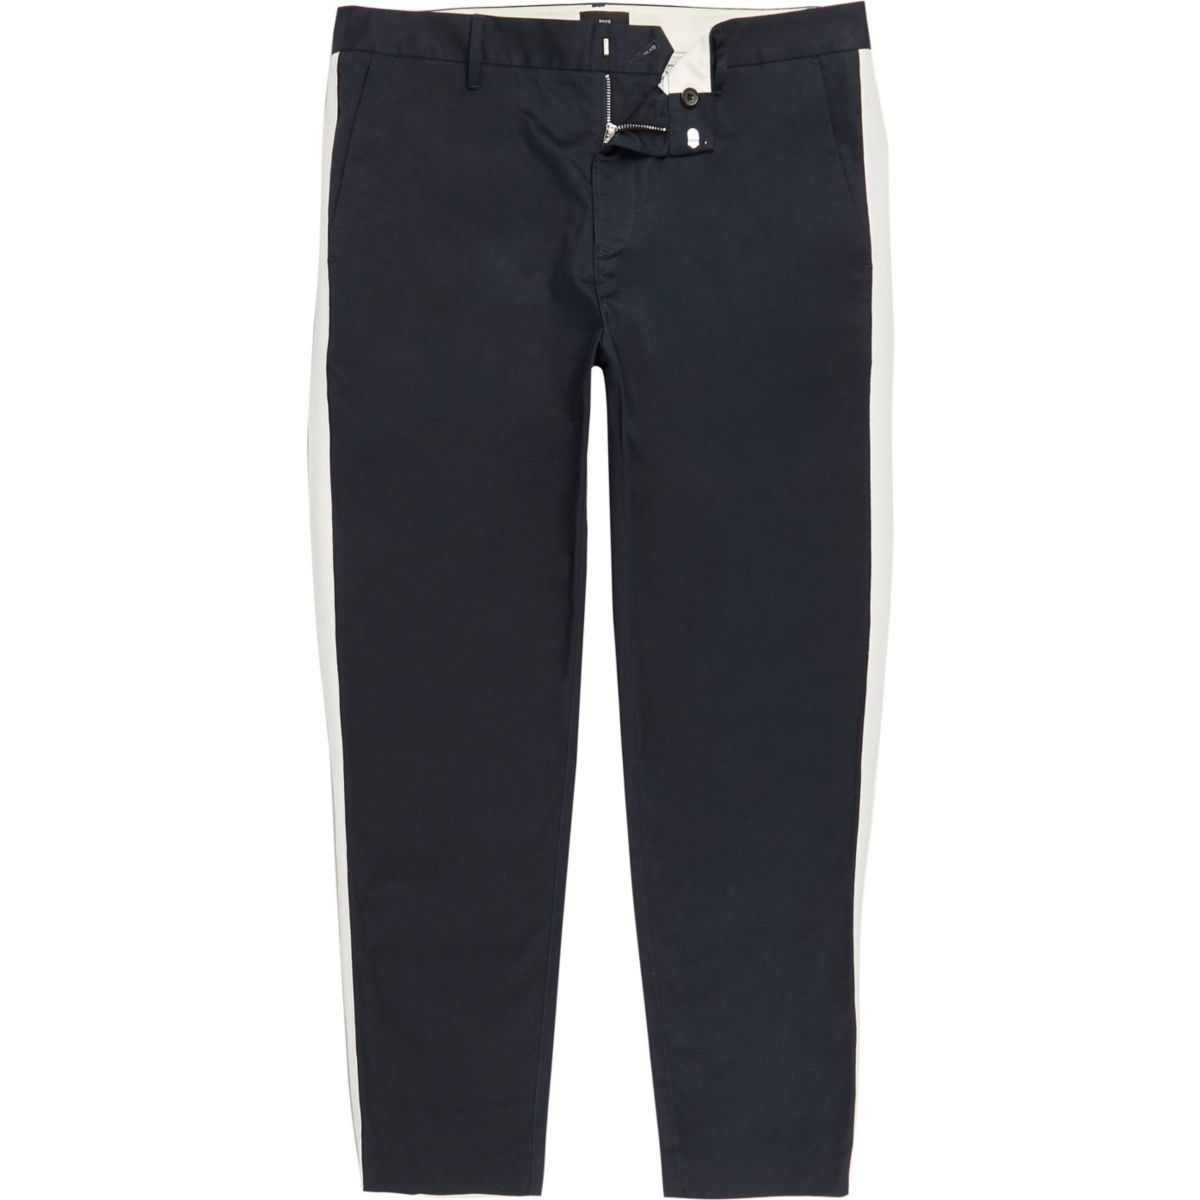 Big & Tall navy skinny taped trousers